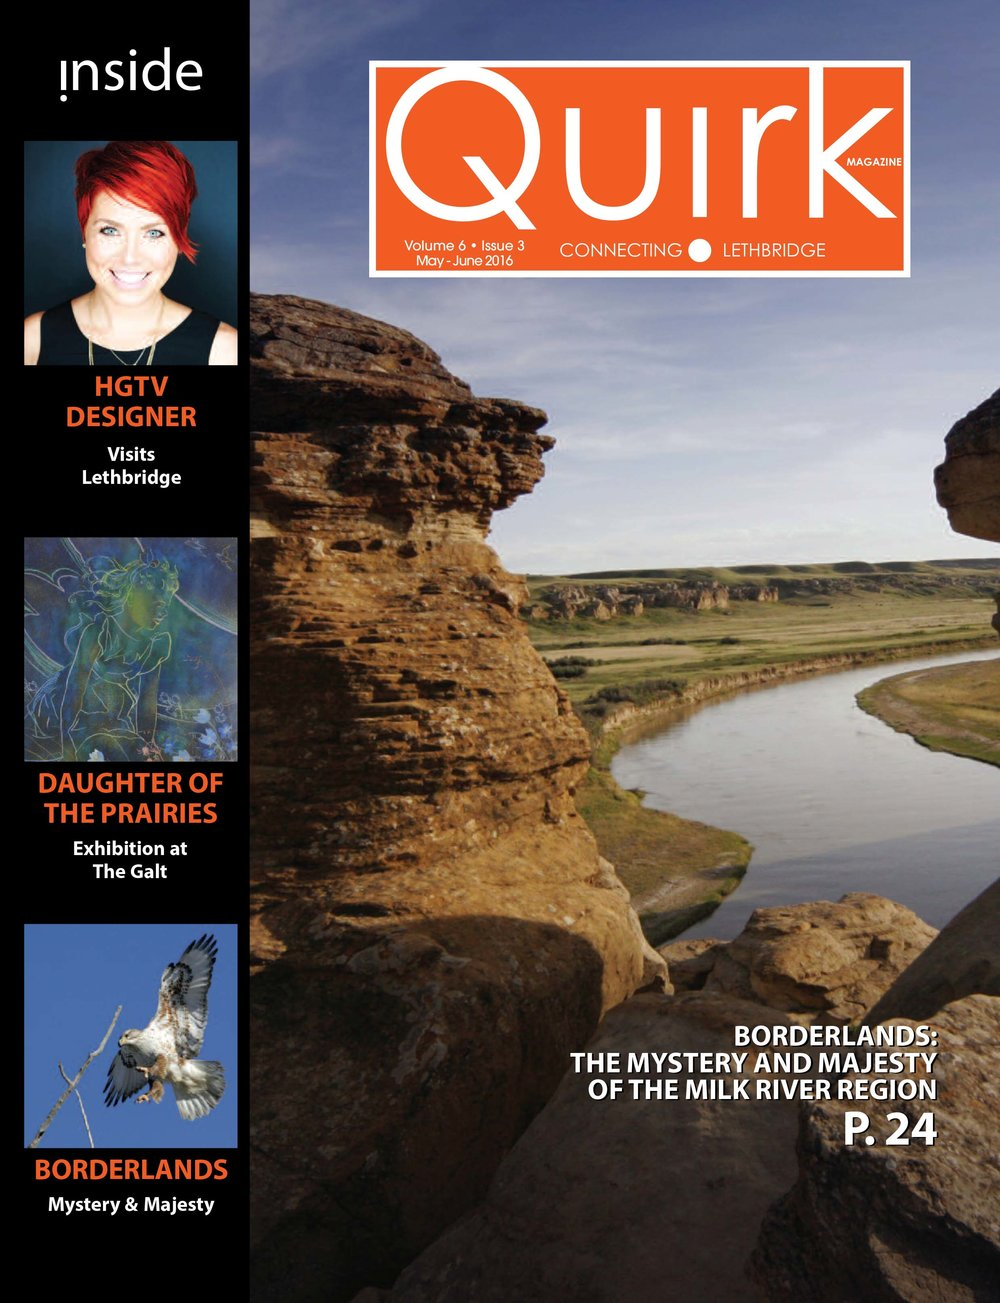 Quirk May June 2016 MED RES-1.jpg